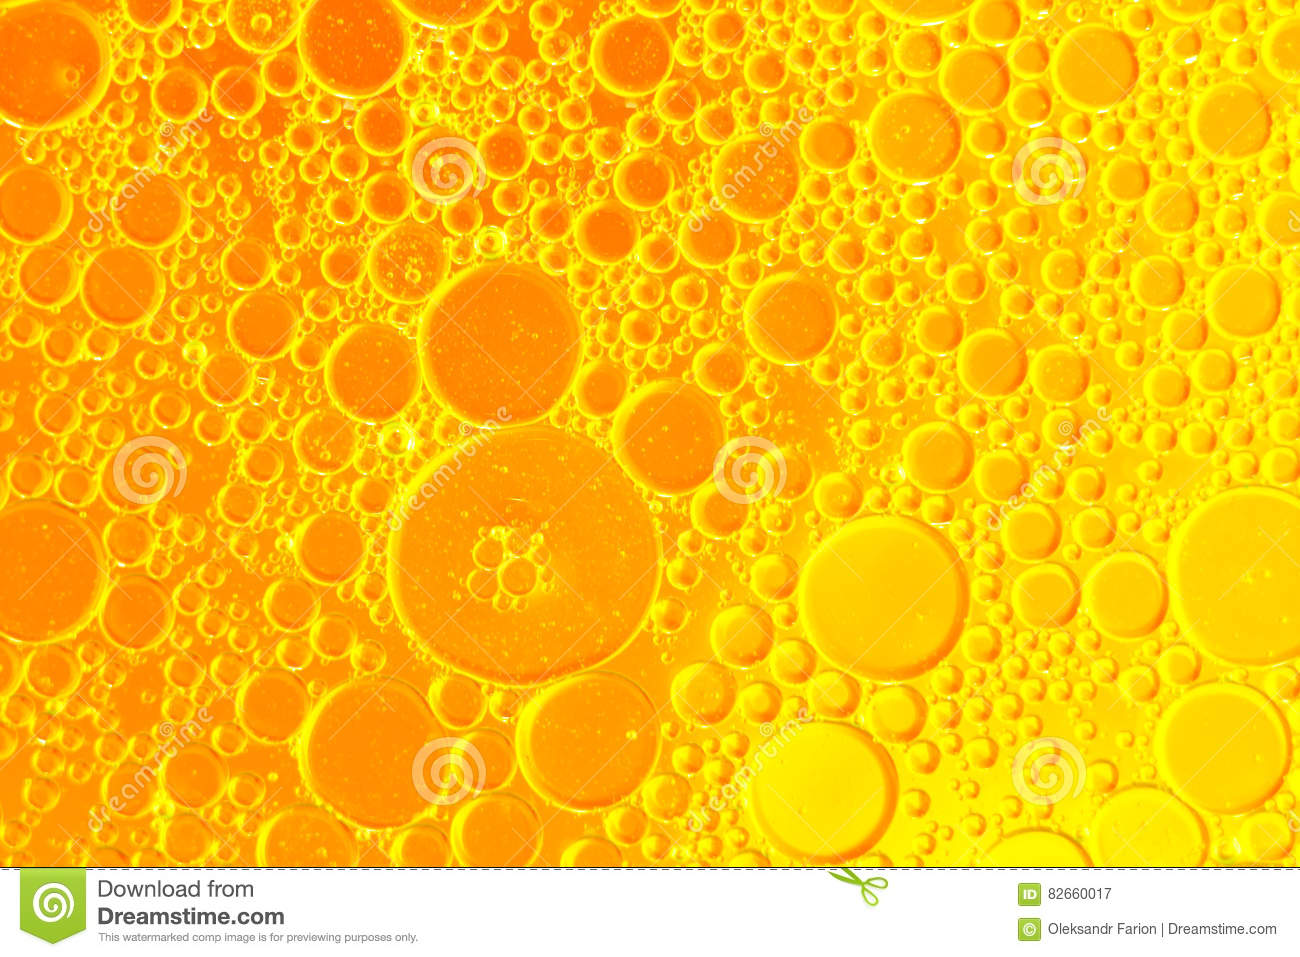 Oil Drops Floating In Water Abstract Orange Color Background